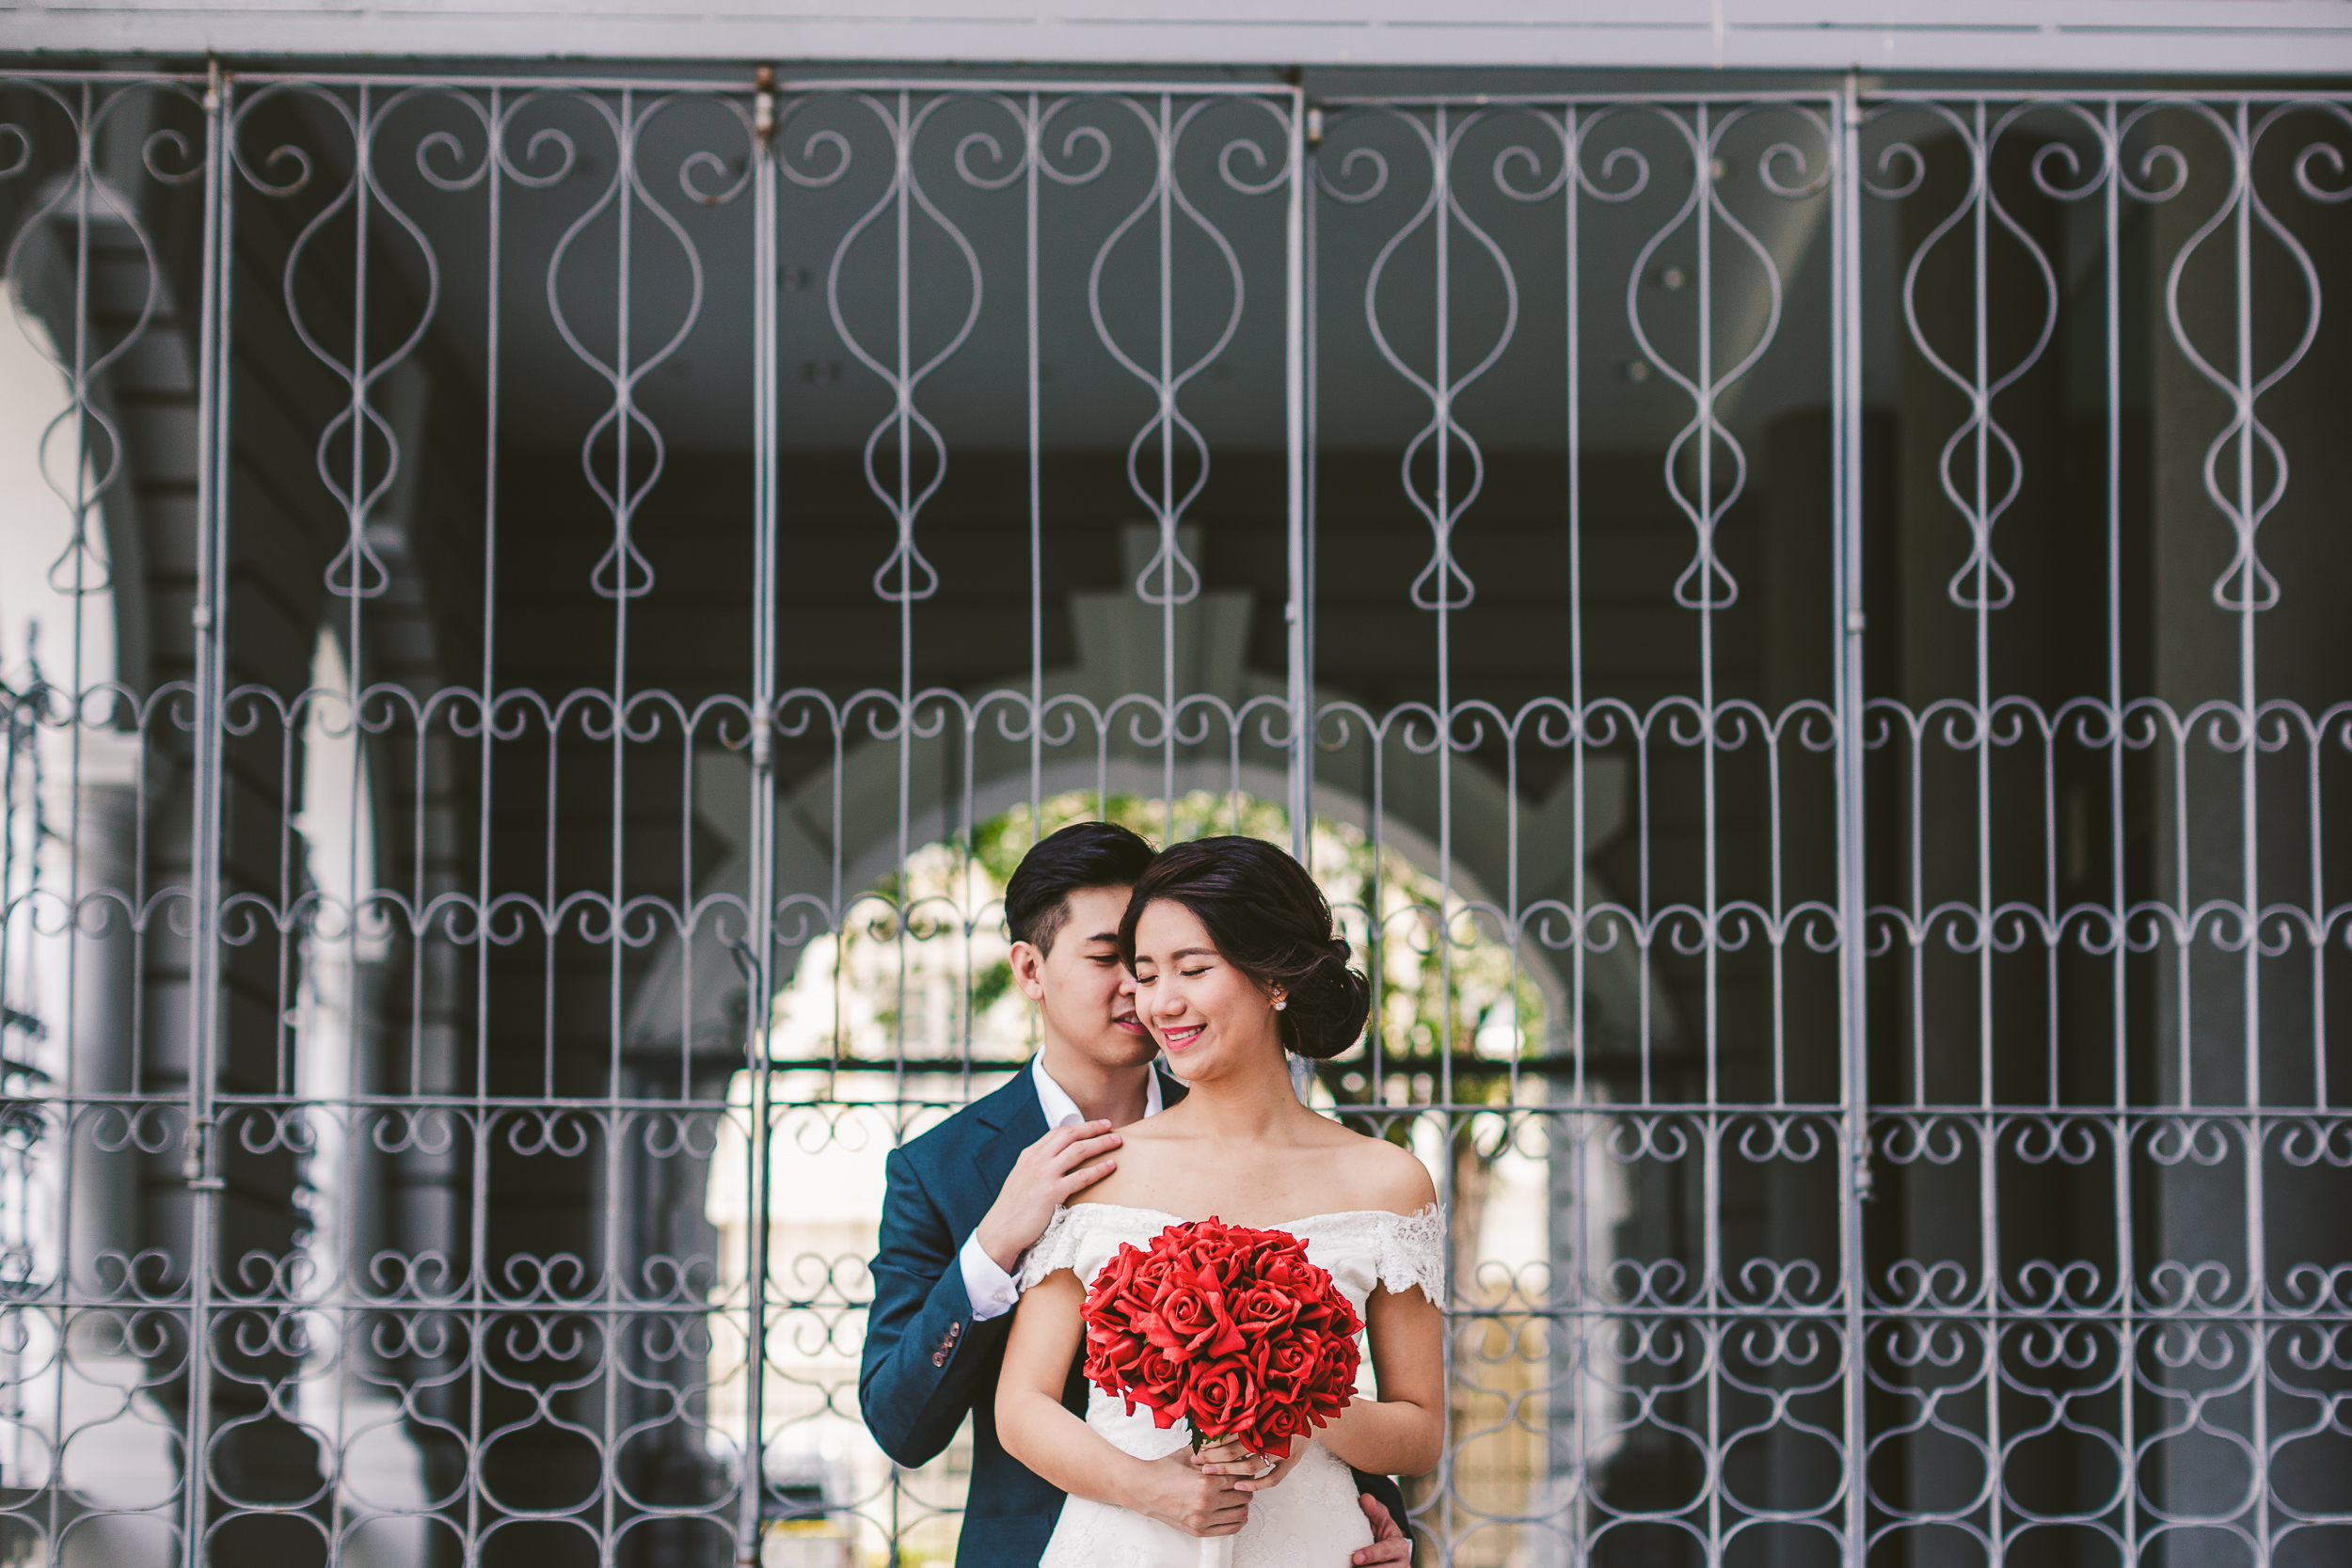 Singapore+Pre+Wedding+Photographer+Jeremiah+Christina-0008.jpg